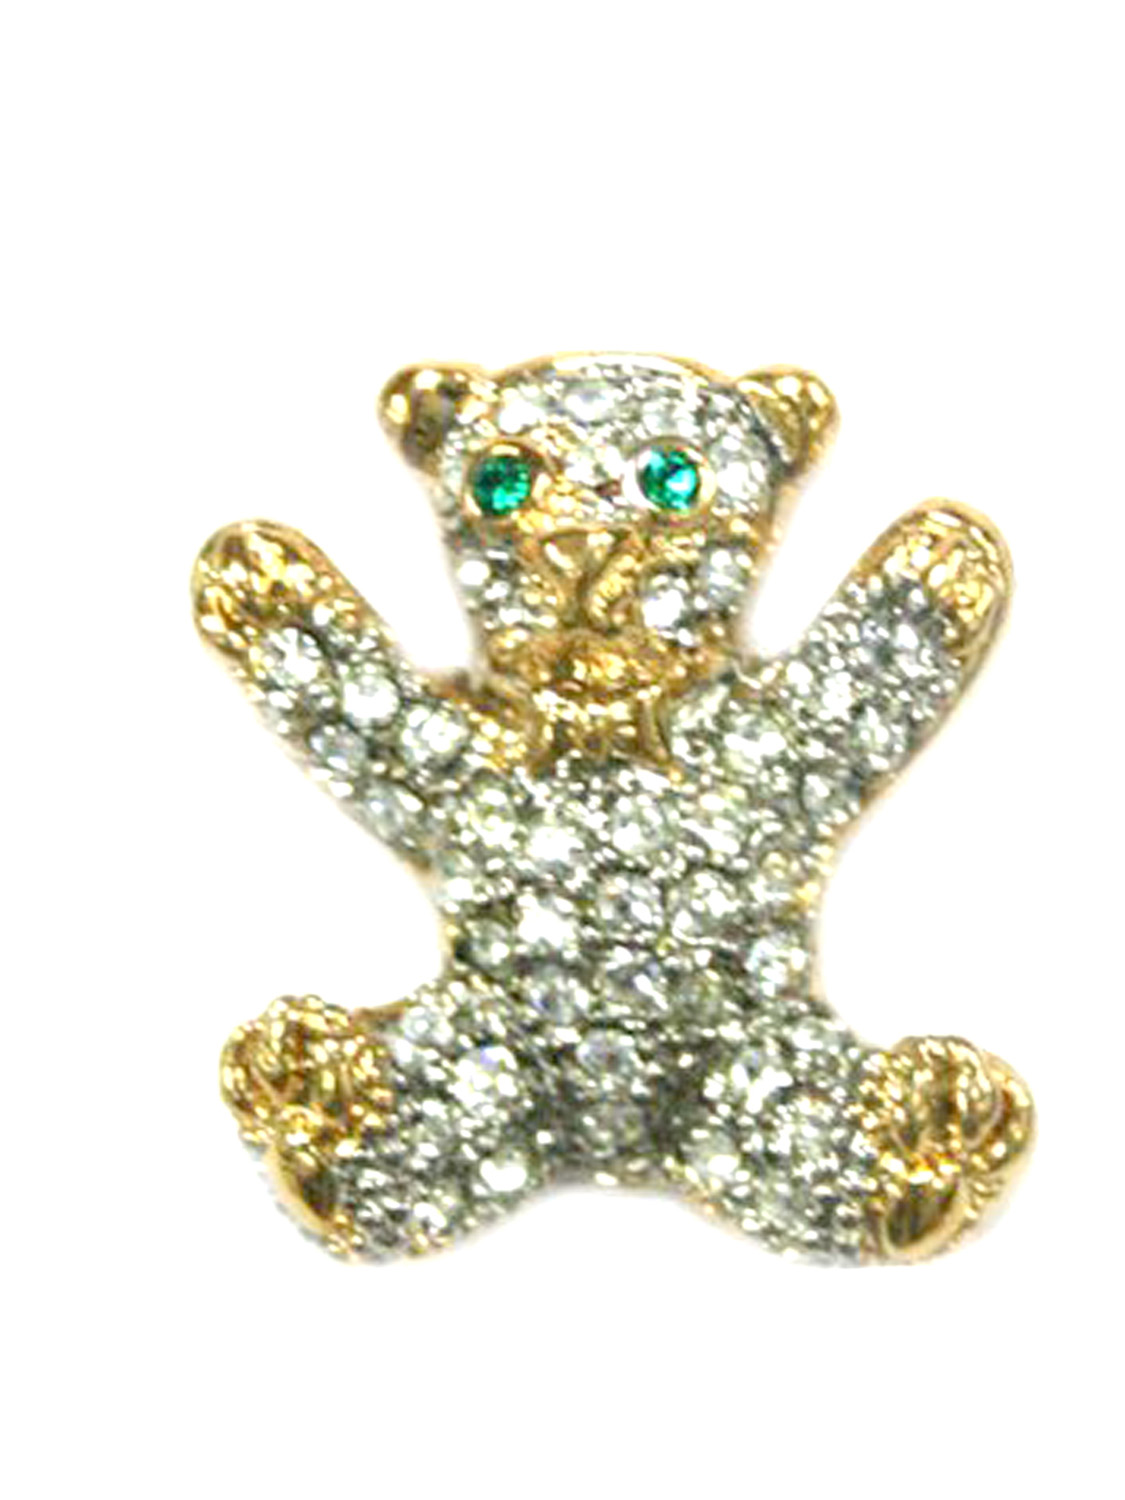 Gold Tone Open Arms Bear Brooch Pin with Rhinestones by